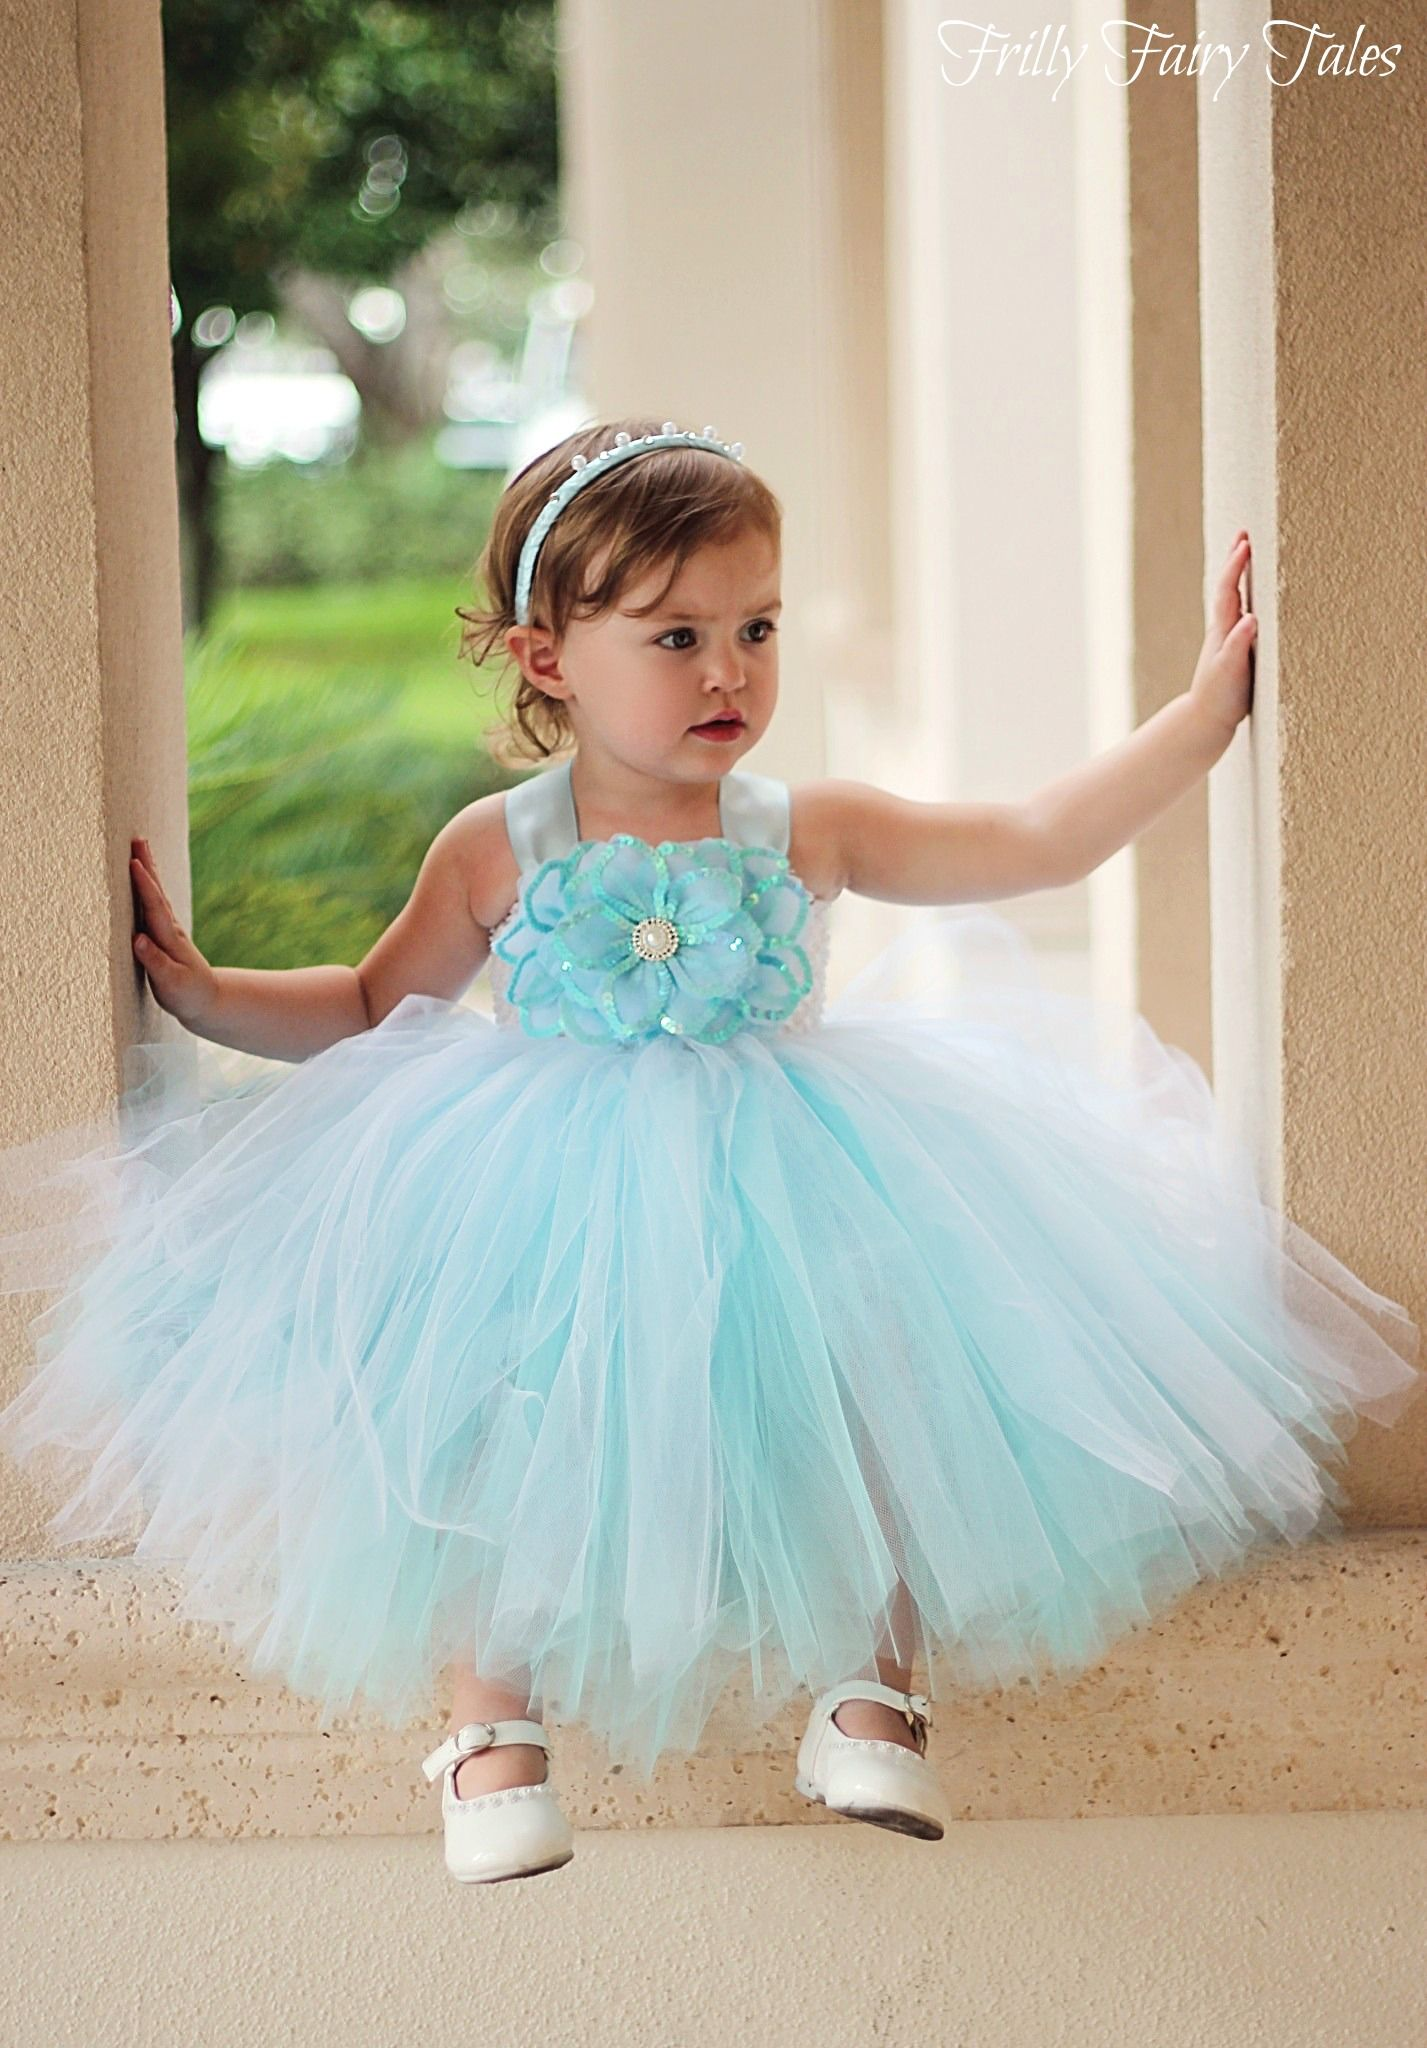 Colorful Infants Suits For Weddings Festooning - Colorful Wedding ...